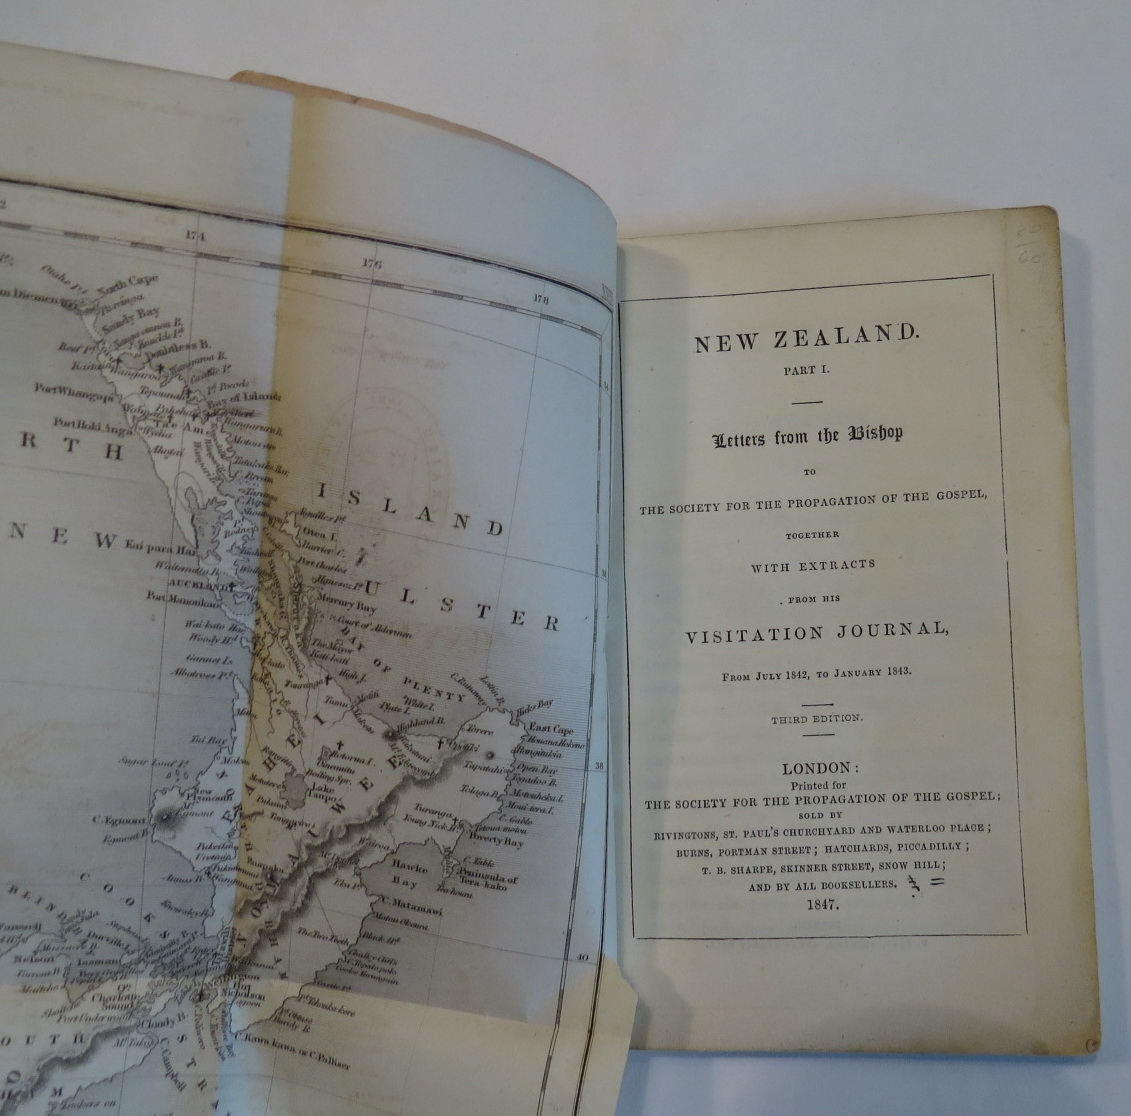 Image for New Zealand. Part I. Letters from the Bishop to the Society for the Propagation of the Gospel together with Extracts from his Visitation Journal, from July 1842, to January 1843.